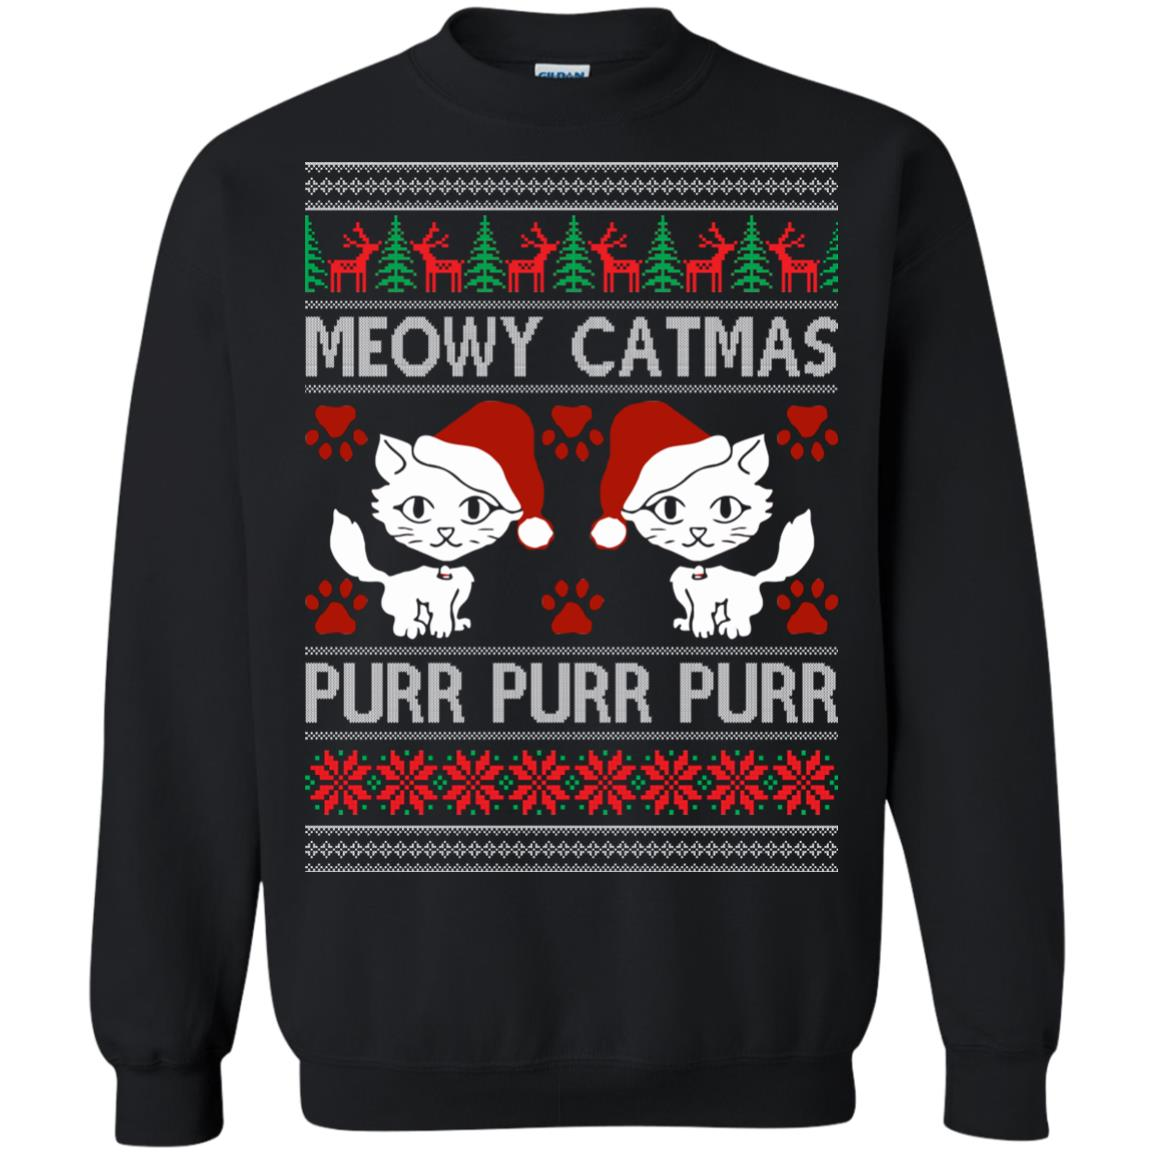 image 1165px Meowy Catmas Purr Purr Christmas Sweater, Cat Lover Sweatshirt